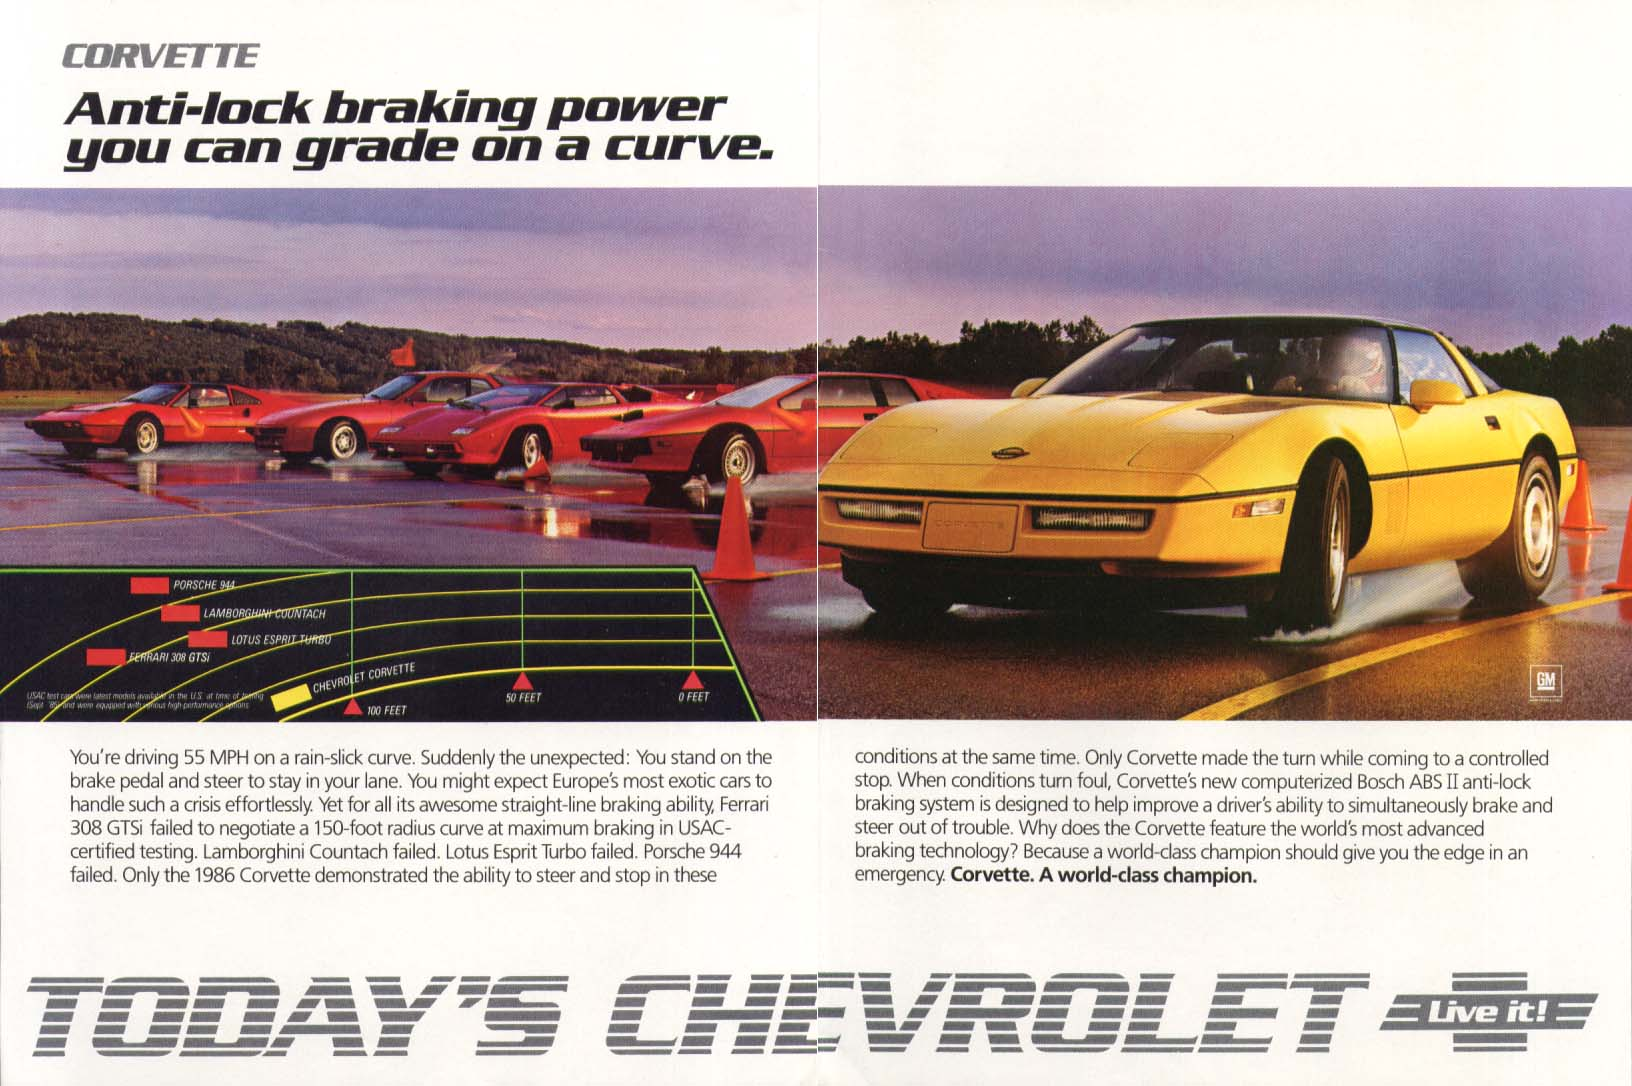 Anti-lock braking grade on a curve Corvette ad 1986 #1